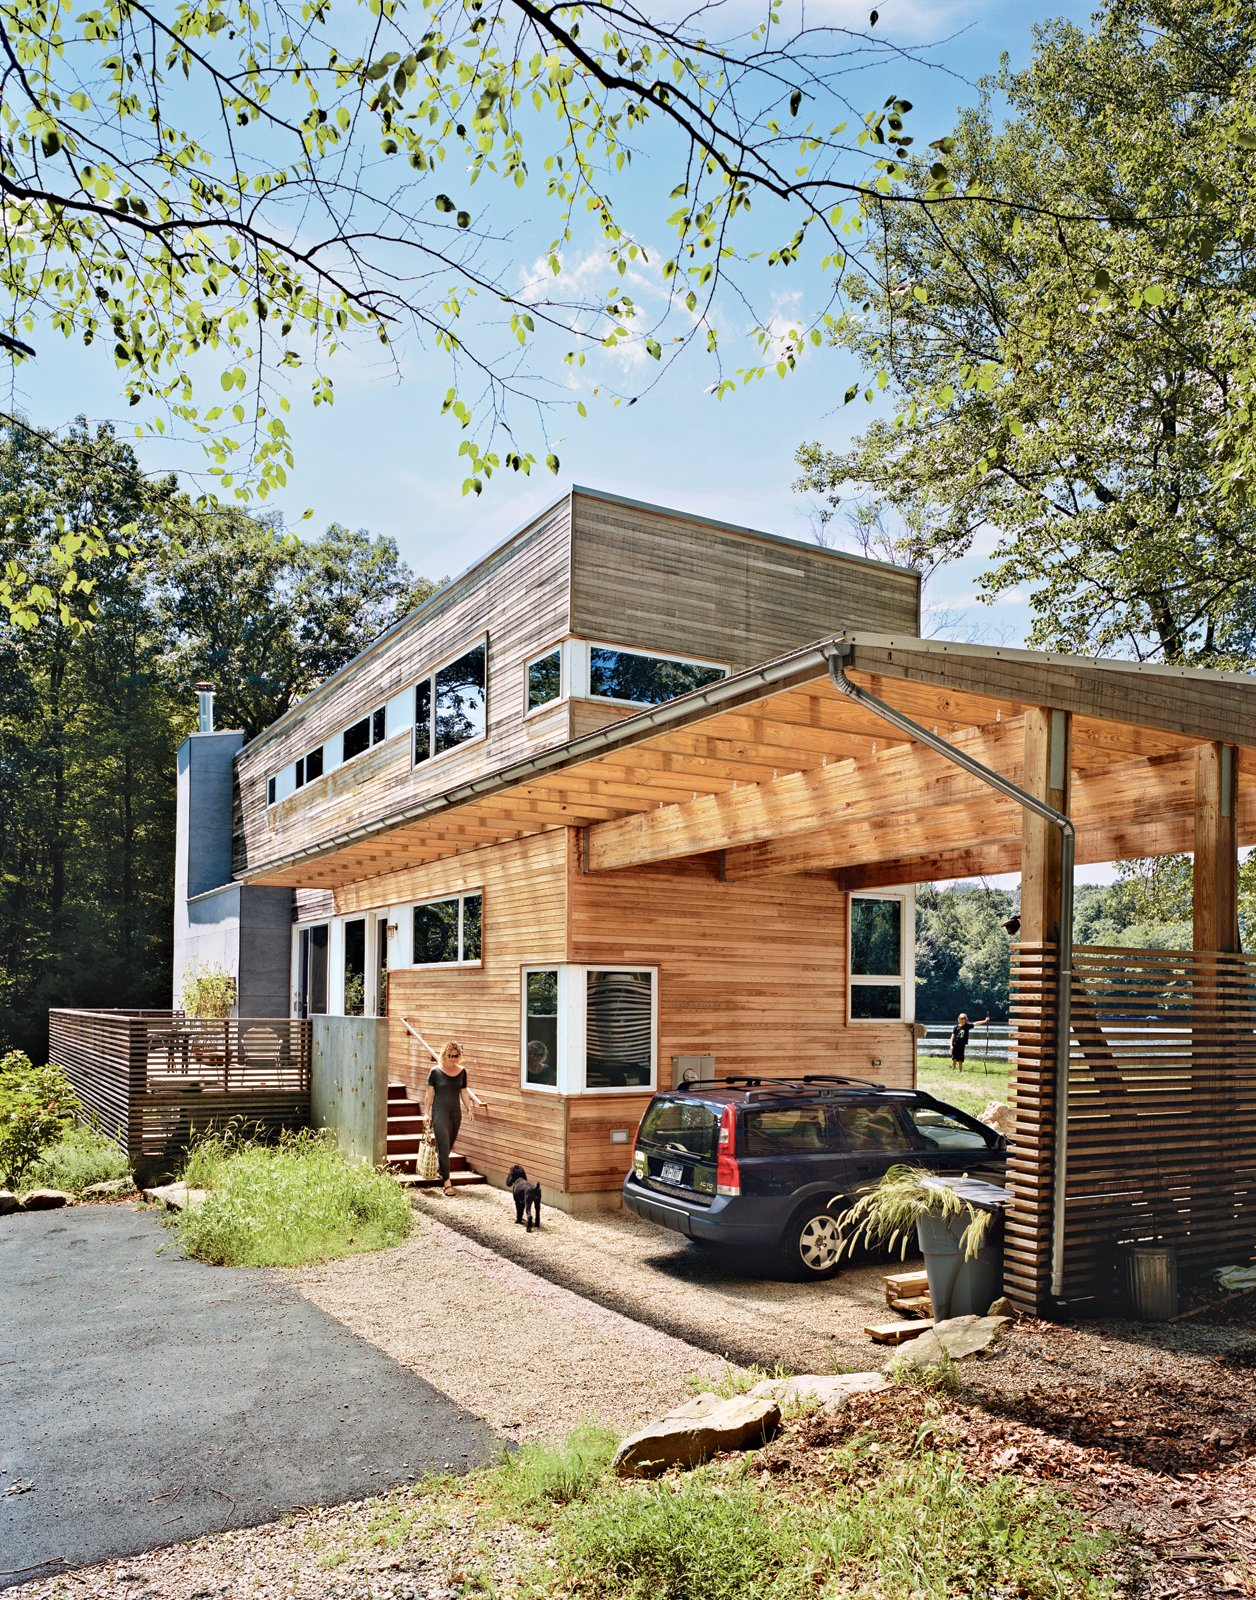 A Lakeside Prefab in New Jersey  A New Zealand expat and her son use their prefabricated lakeside New Jersey retreat as an outdoorsy counterpoint to city life.  Photo by: Mark Mahaney  Curious on what was popular last week? Click here!